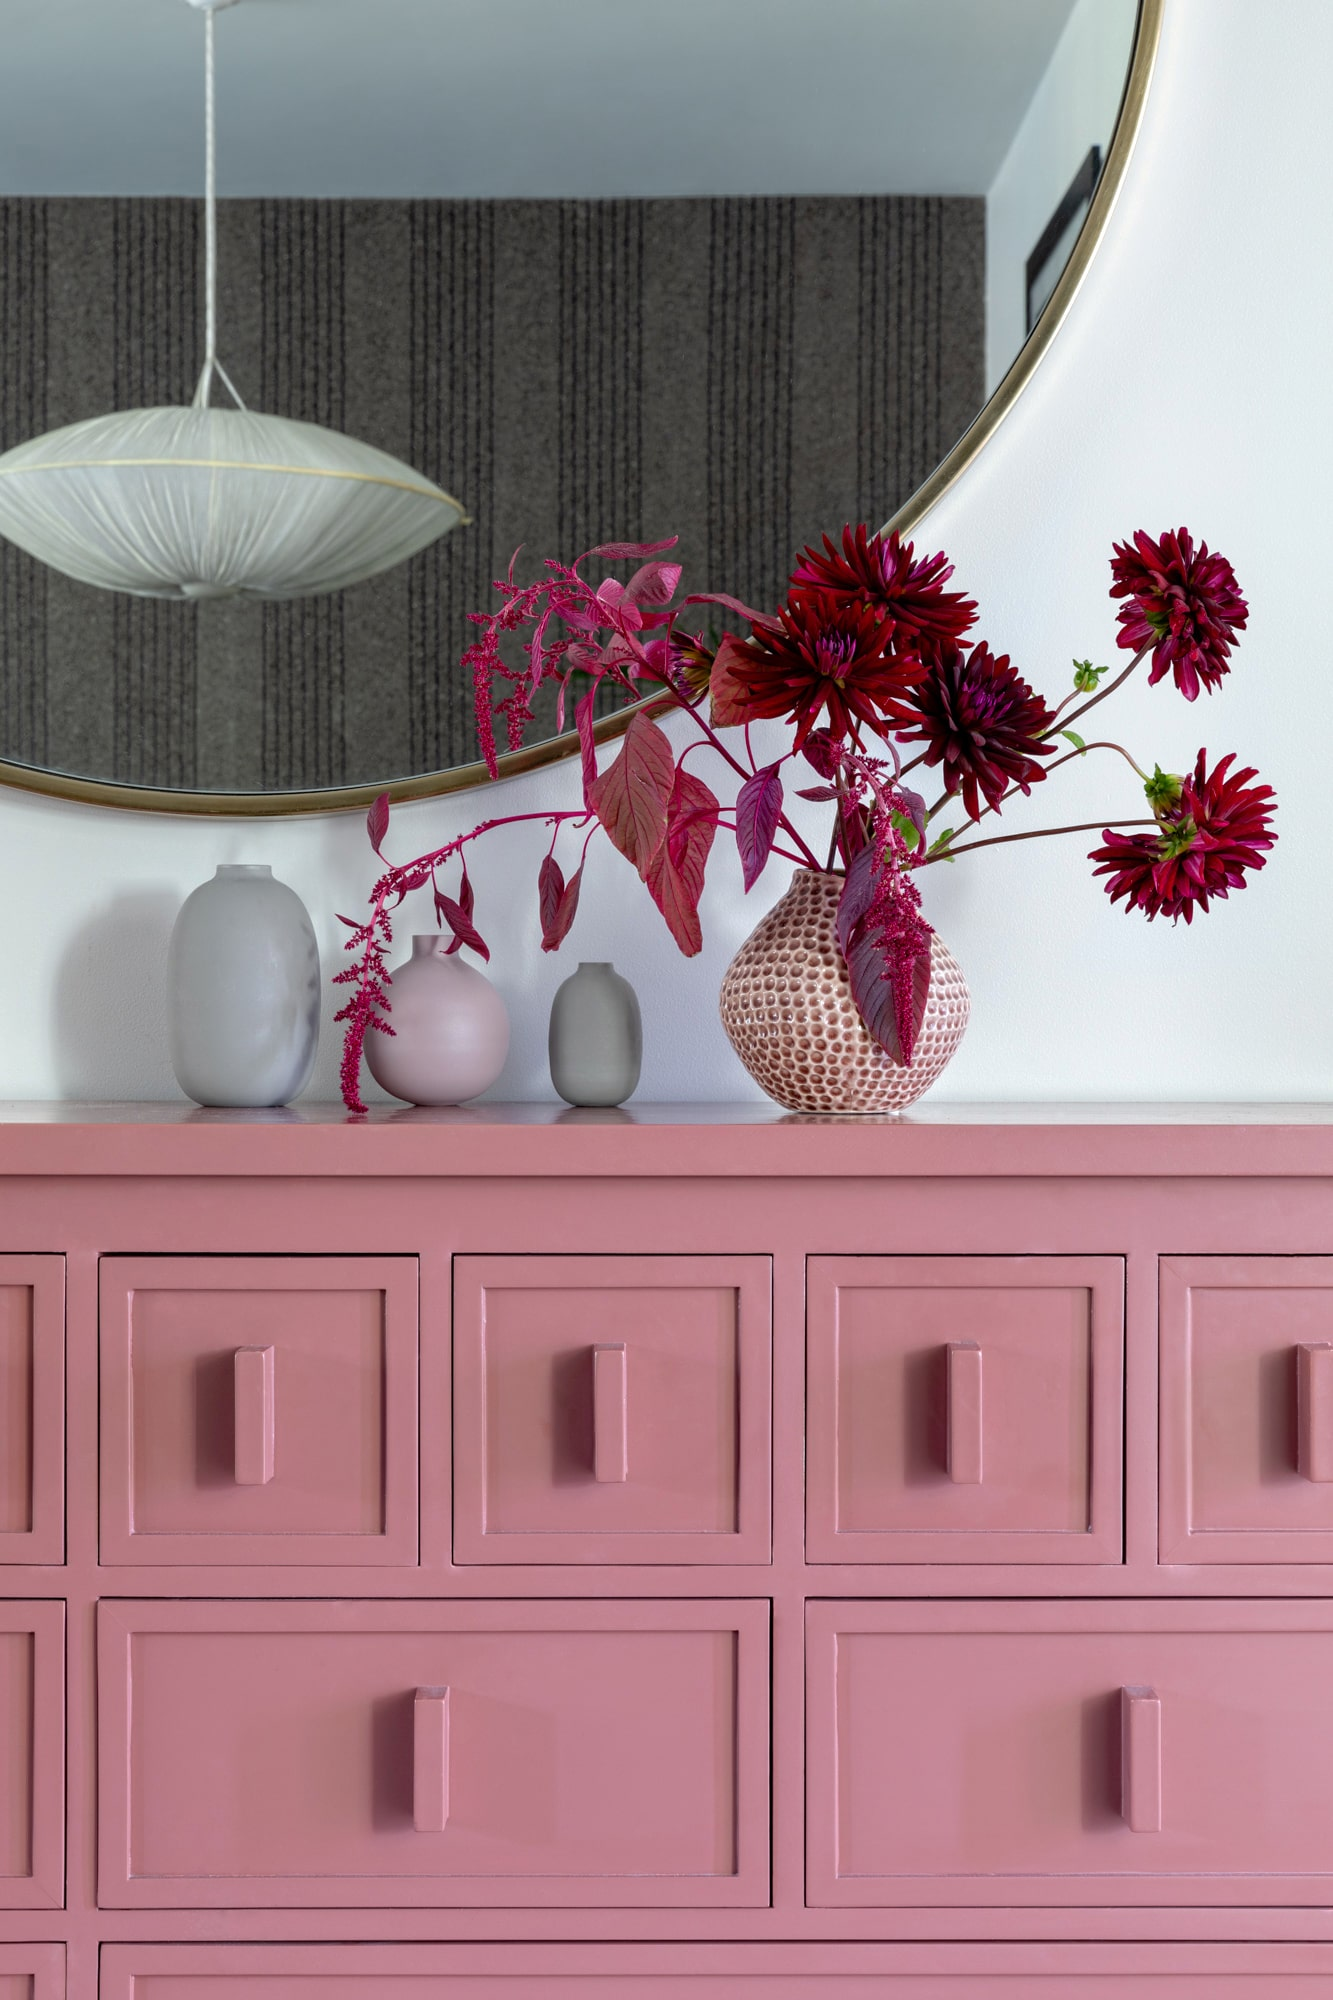 interior detail shot: pink cabinet, burgundy flowers, mirror with a ceiling lamp reflection